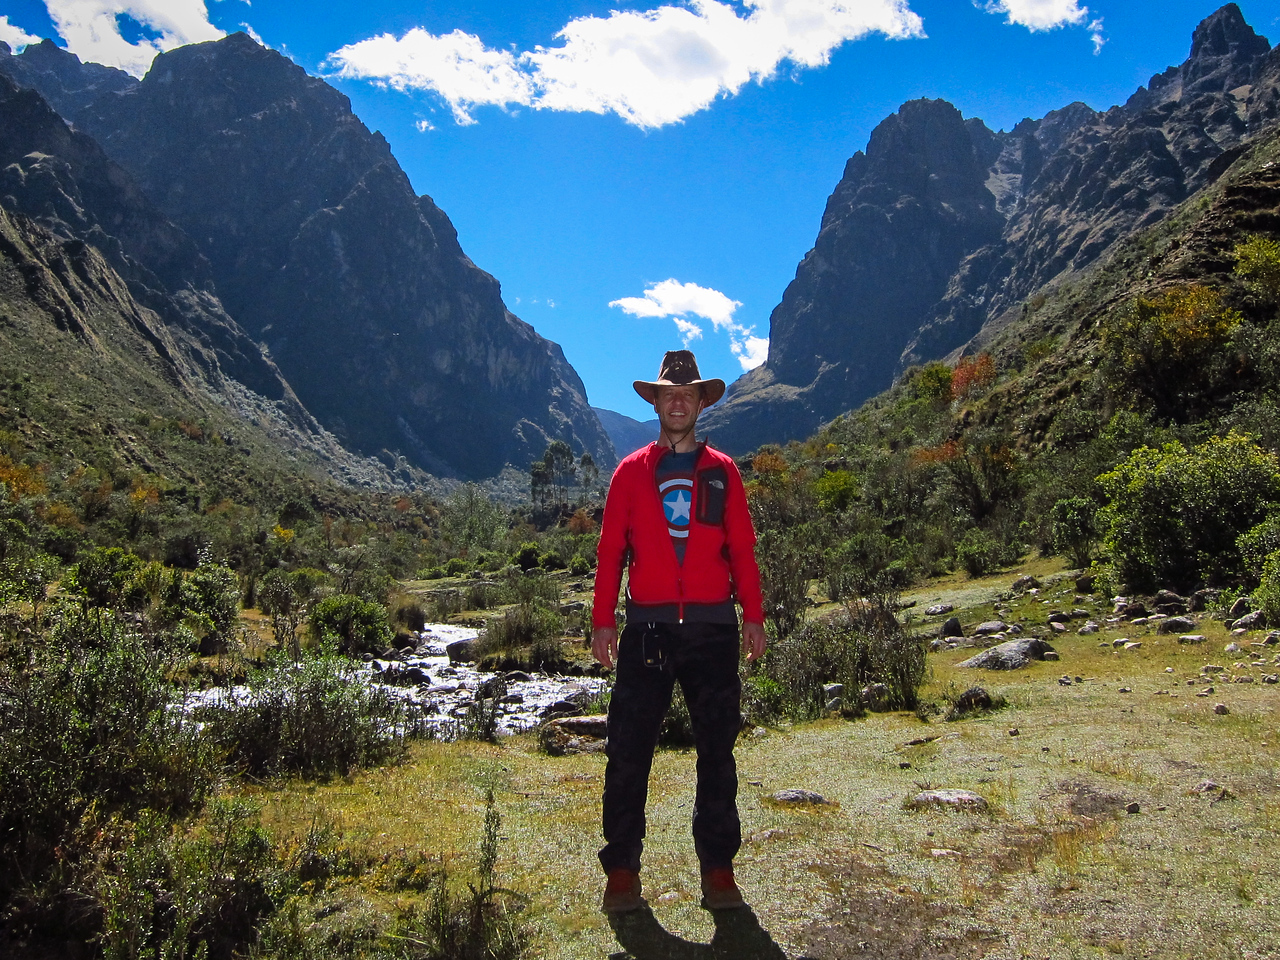 Pumahuanca Valley - at about 2 hours in.